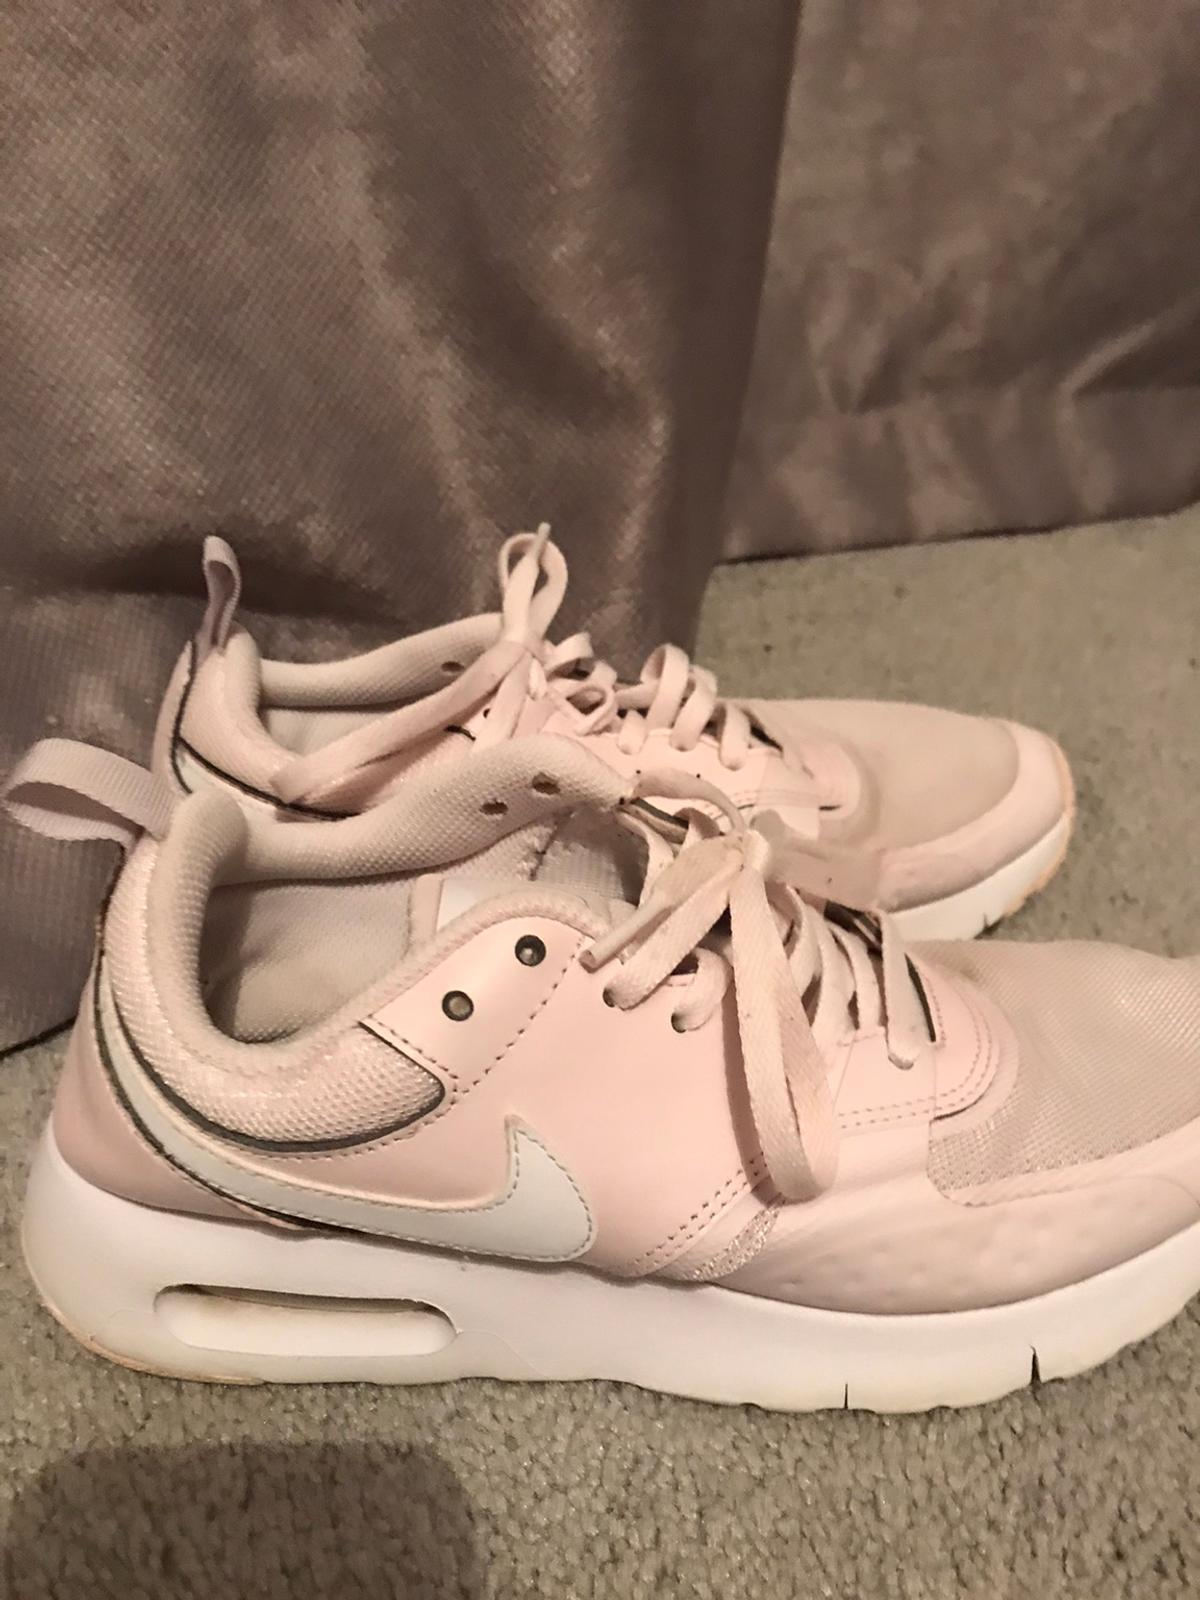 Pink nike trainers size 5.5 Due to the current situation , these items will not be for sale